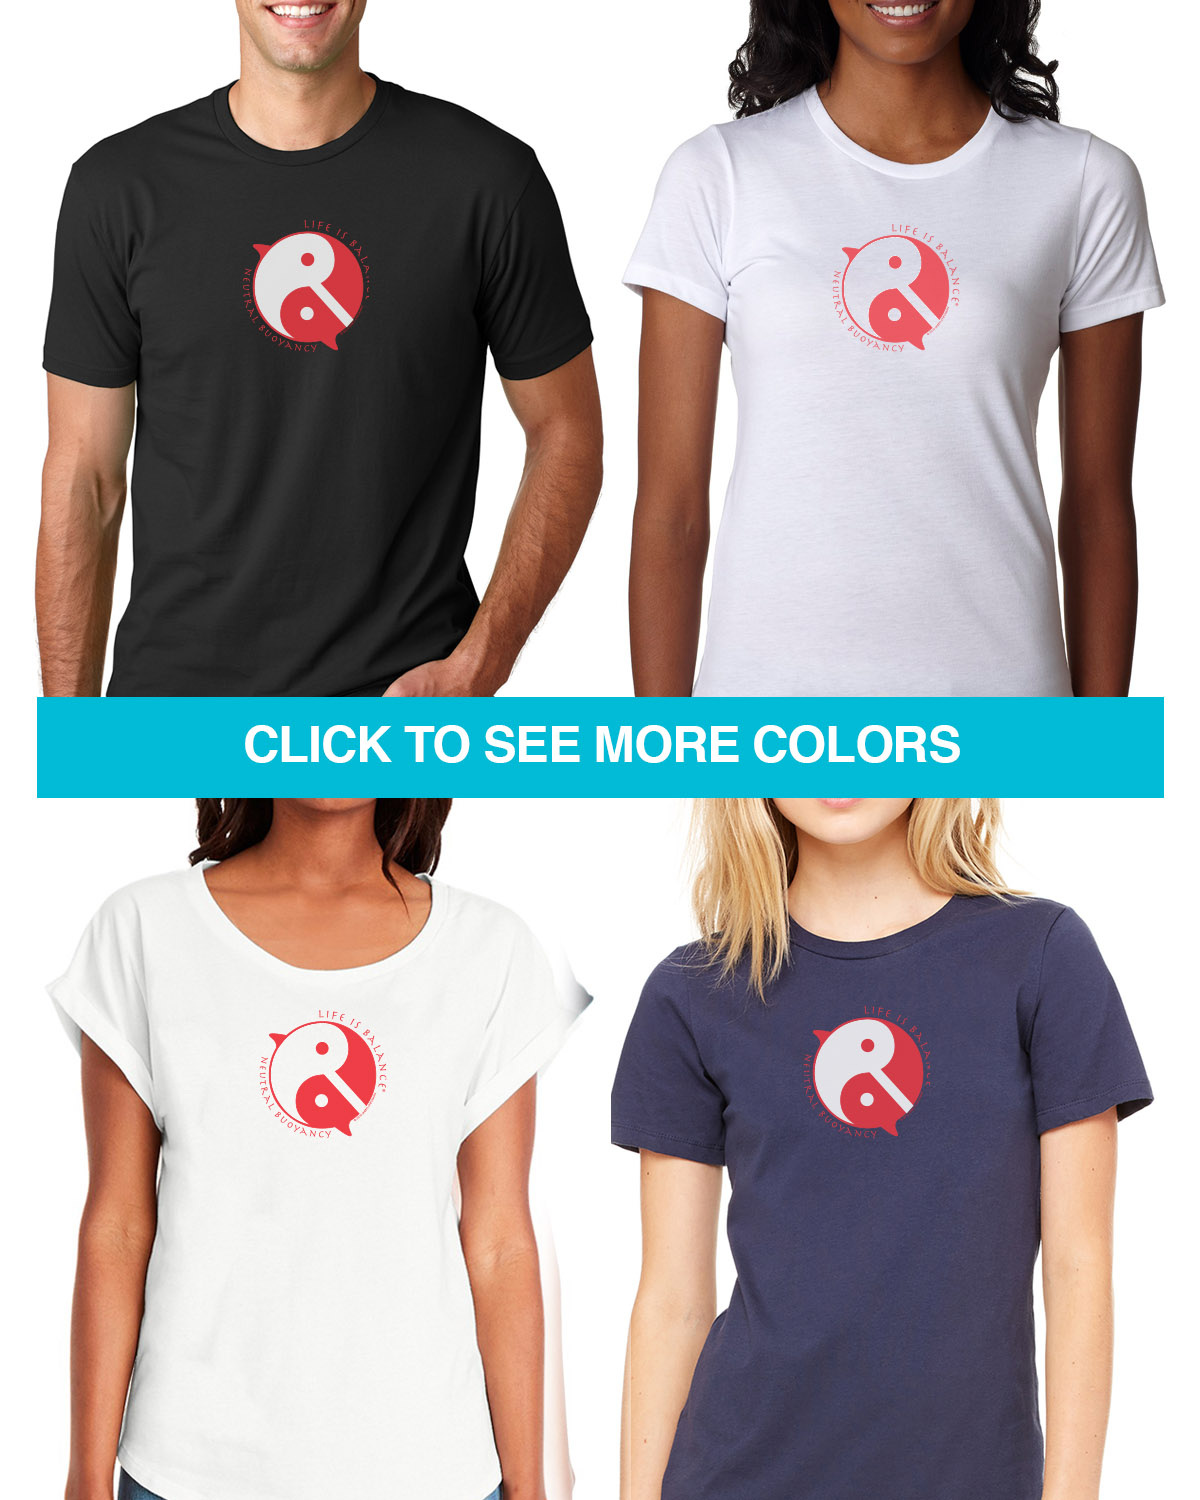 Short sleeve scuba diving T-shirts for Men and Women. Women's fitted styles and a unisex style for men and women